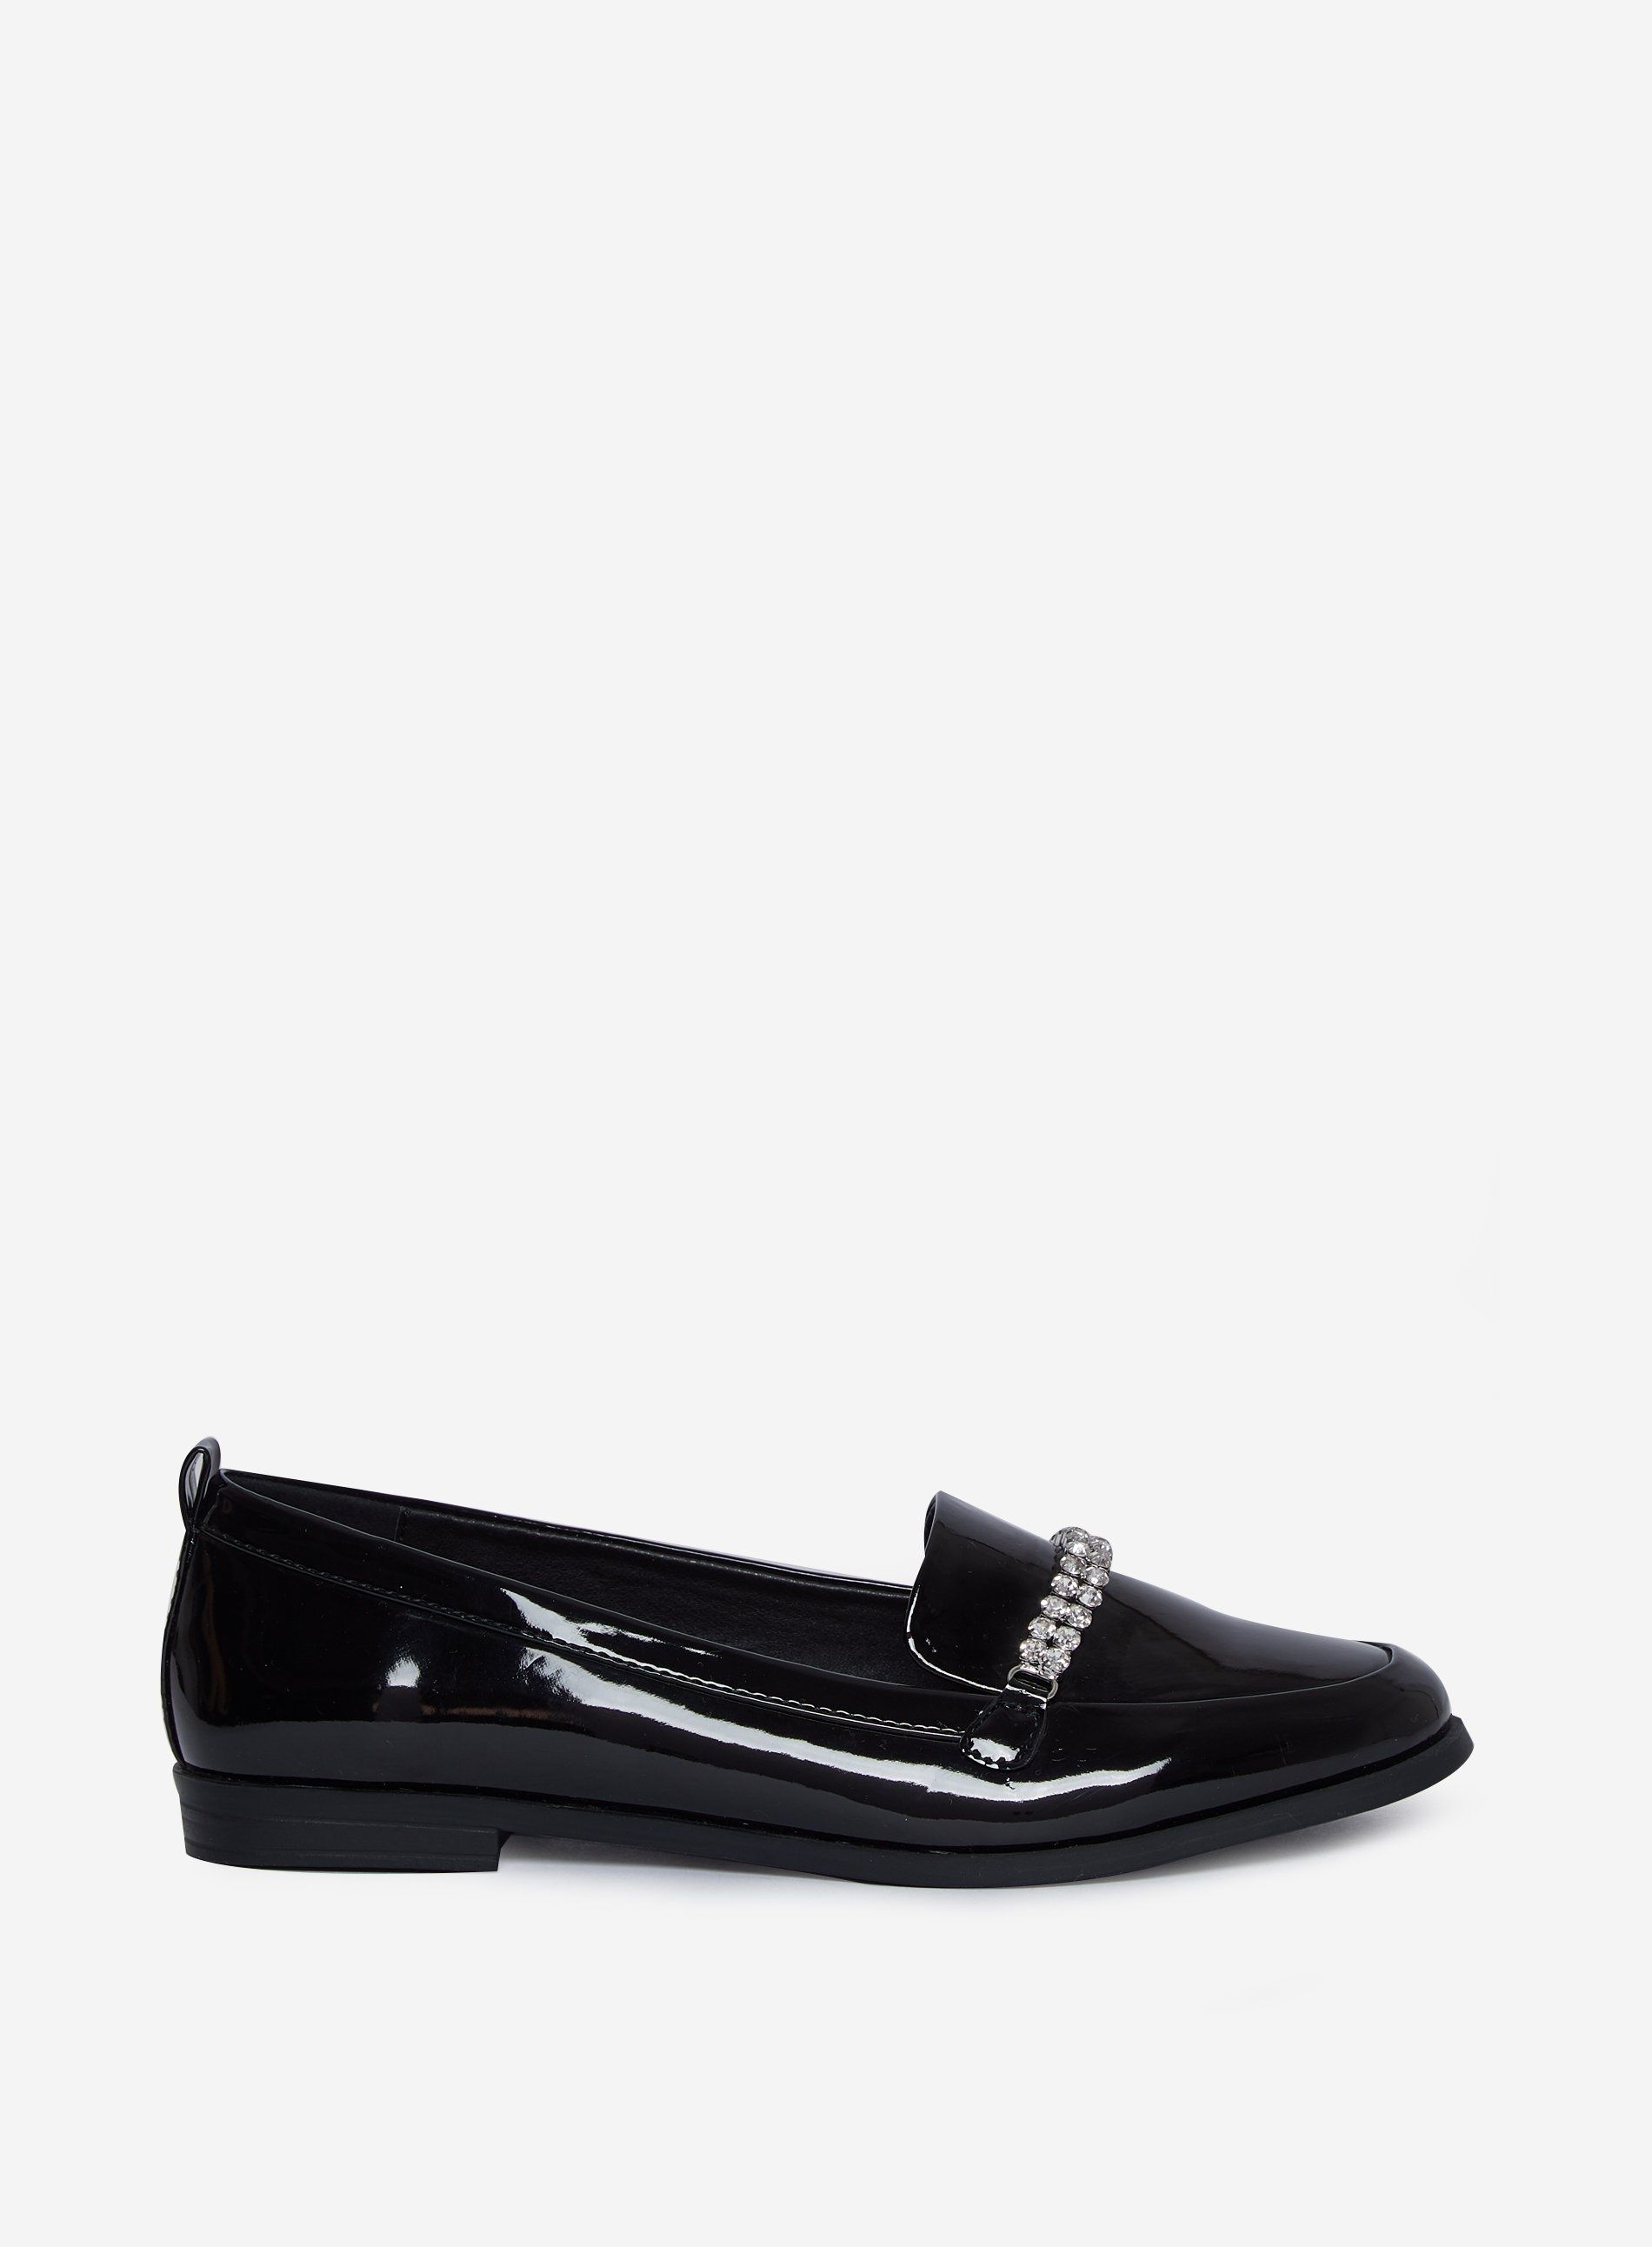 Dorothy Perkins Womens Black Lightning Loafers Flats Shoes Slip On Casual